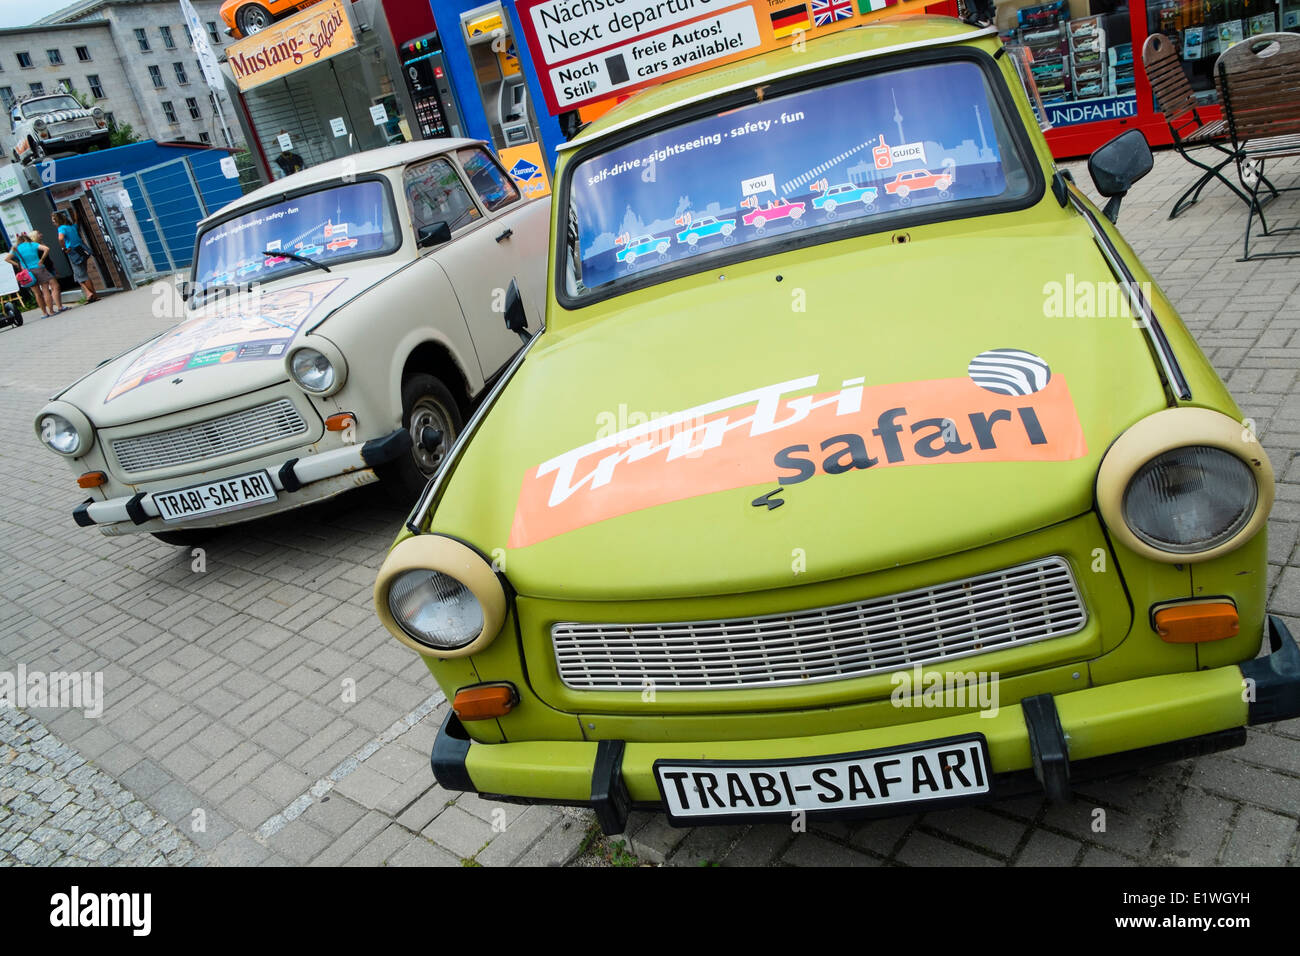 Trabi World guided tours by vintage East German Trabant cars in Berlin Germany - Stock Image